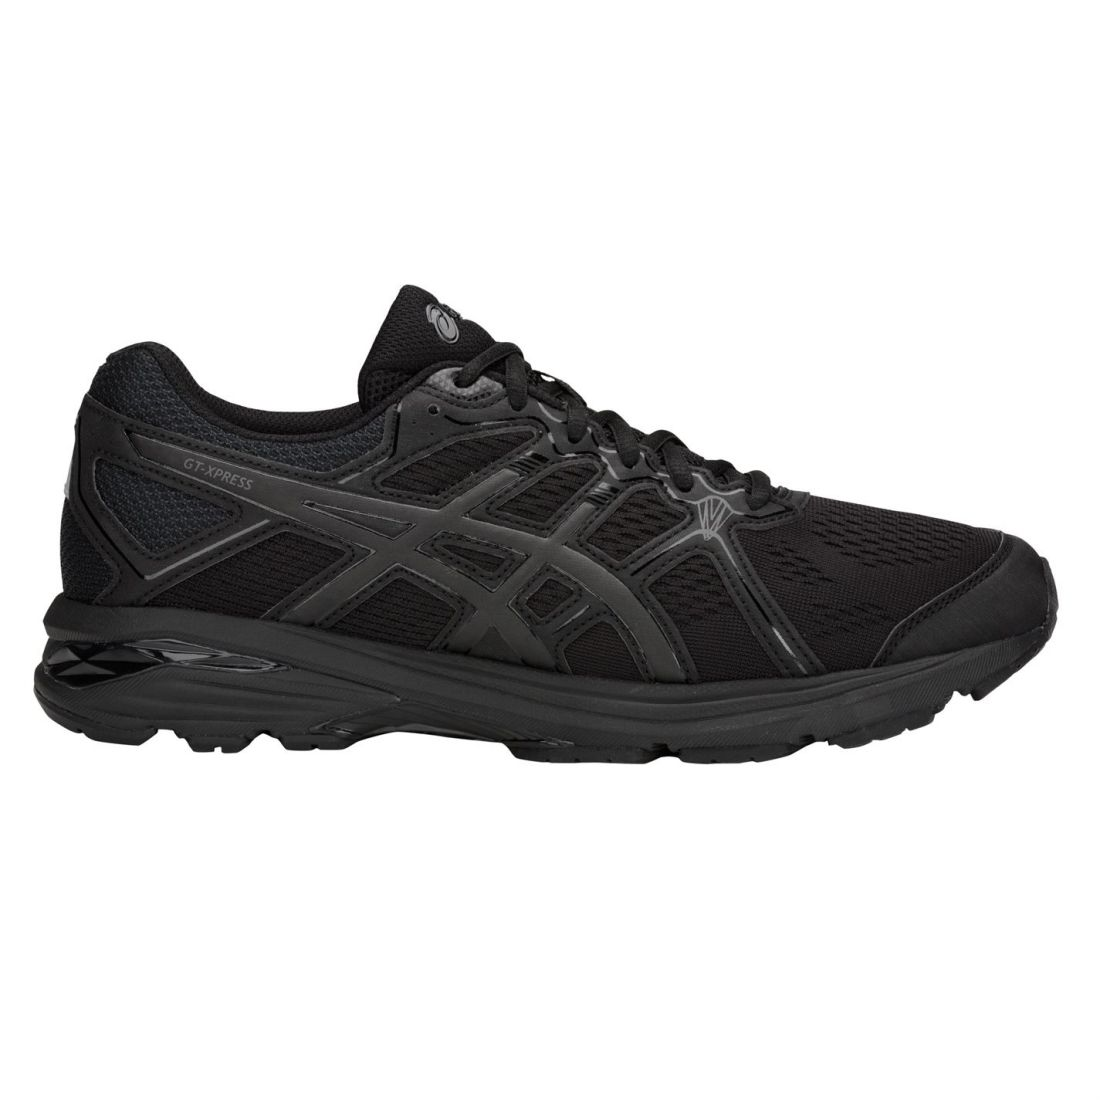 Asics GT Xpress Running shoes Mens  Gents Road Laces Fastened Ventilated  sale online